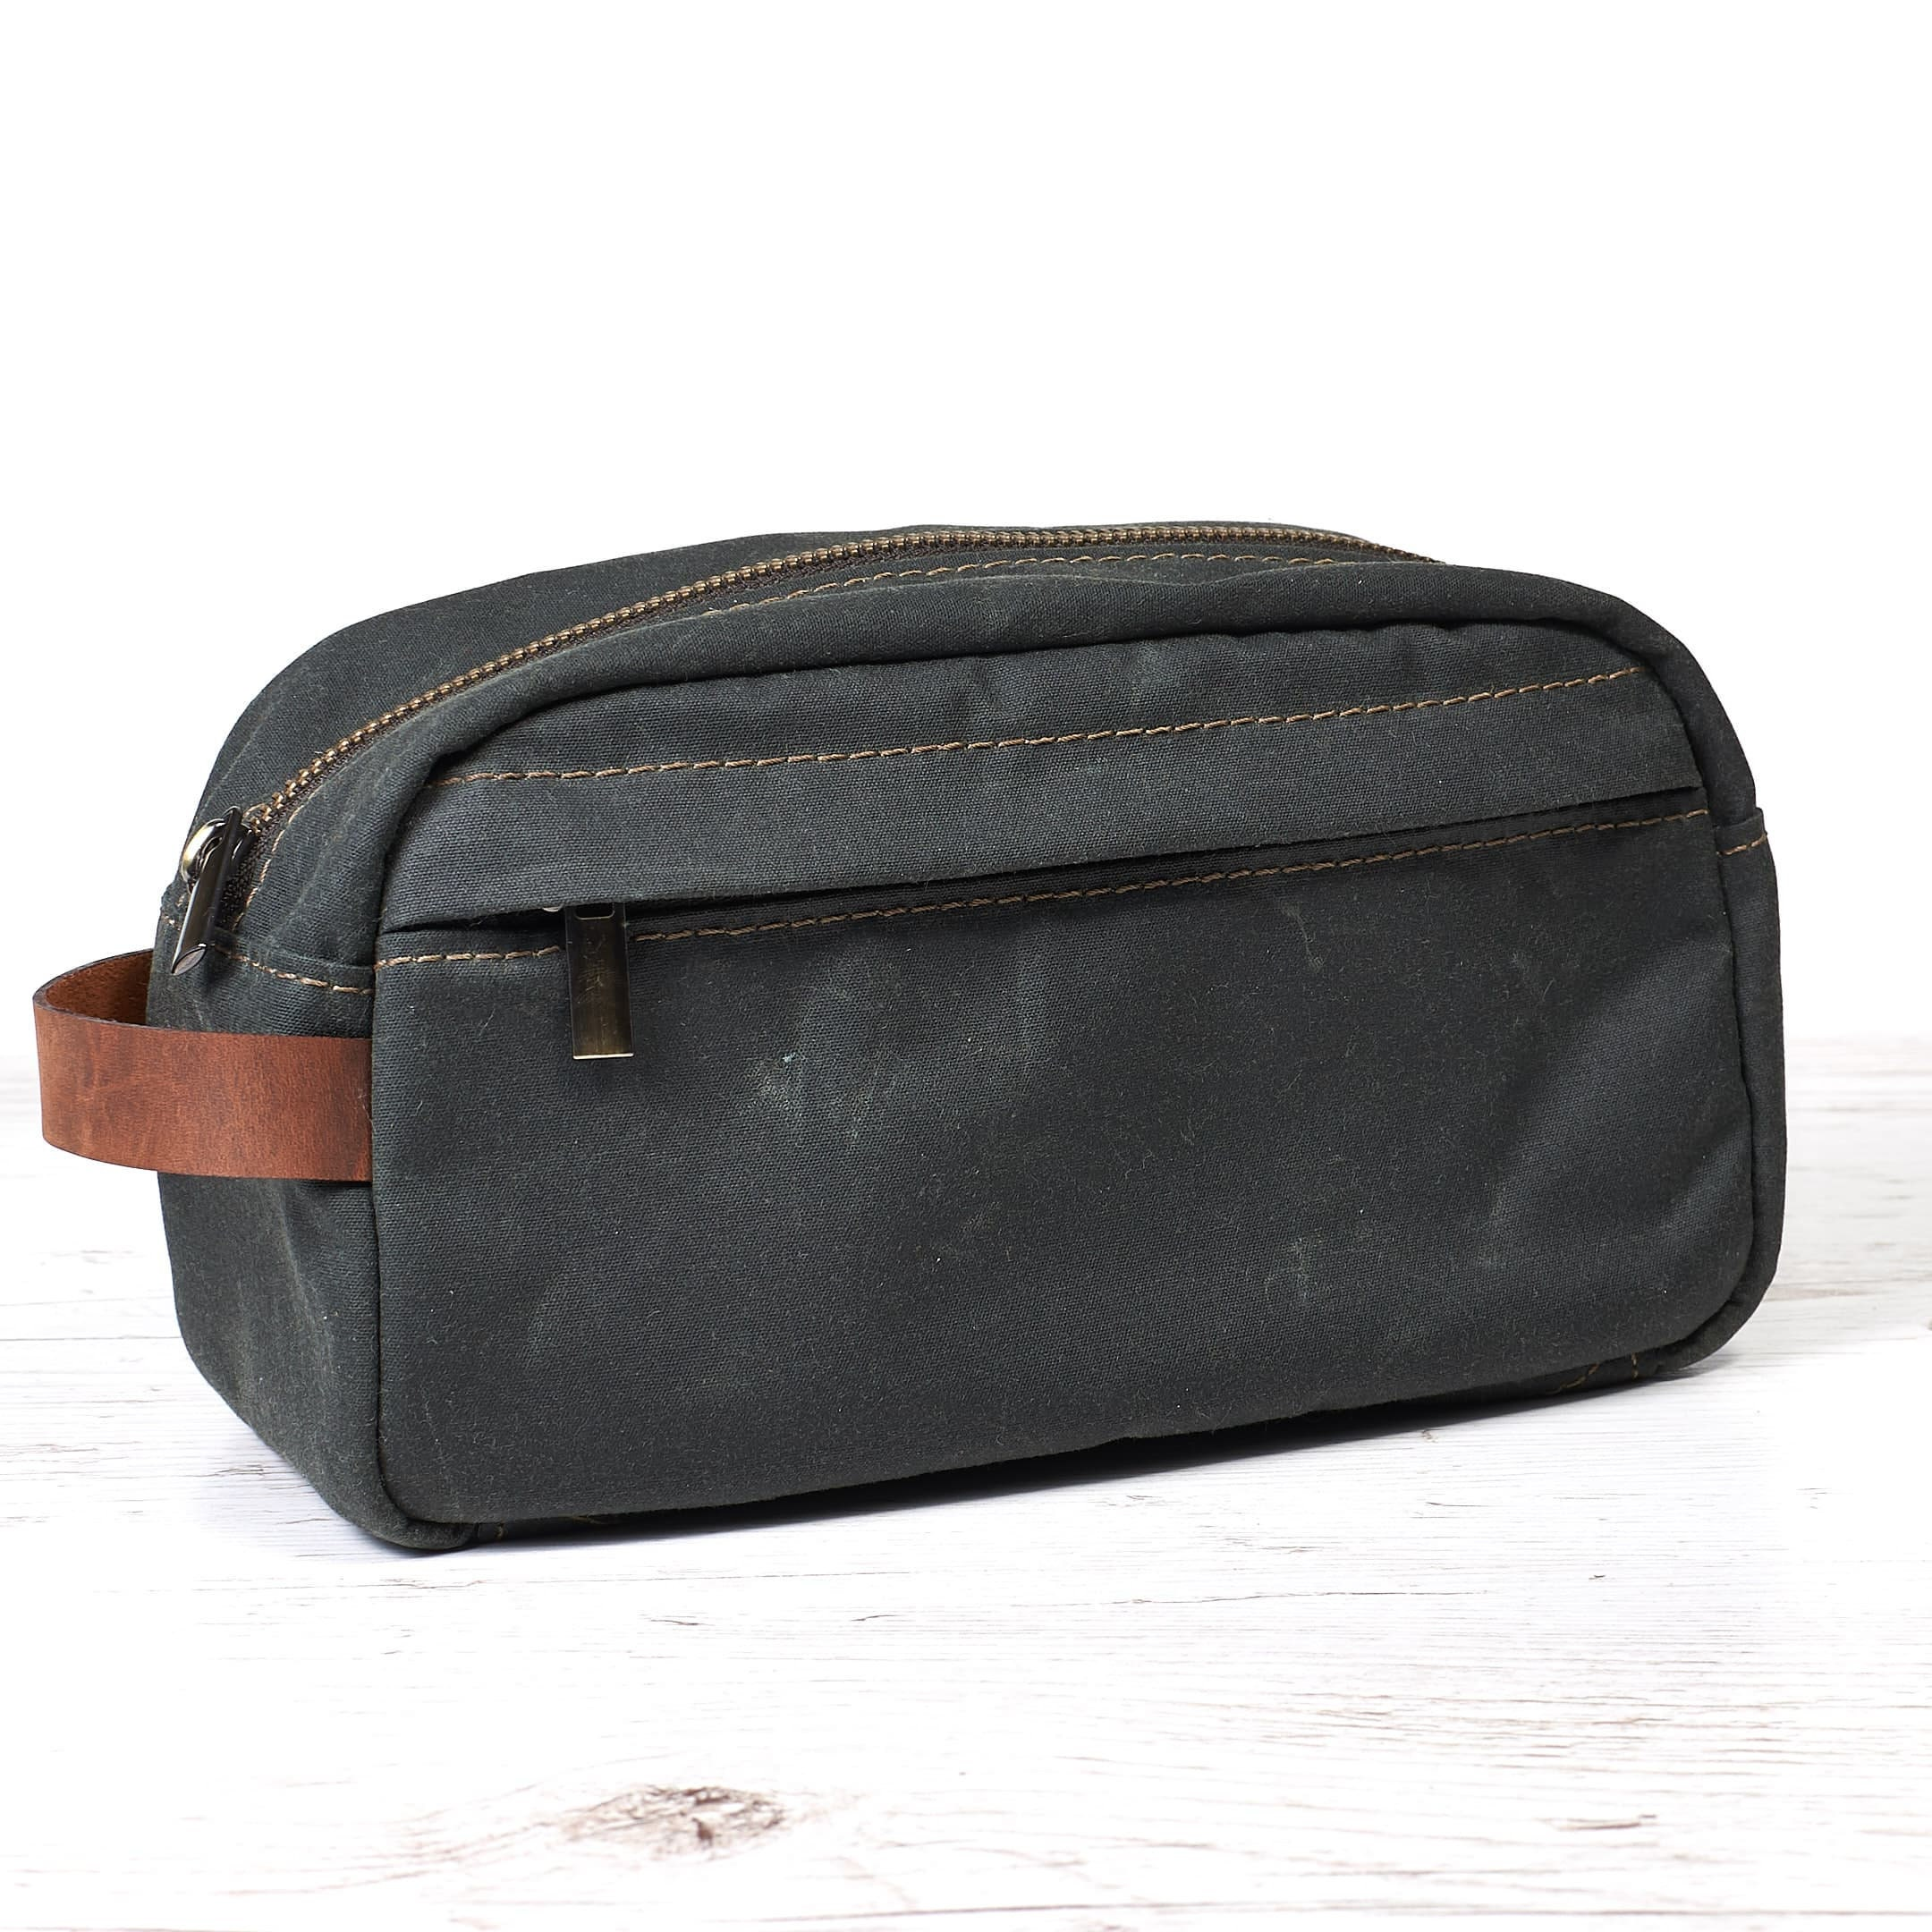 a90768cce1 Waxed canvas dopp kit. Travel accessories.